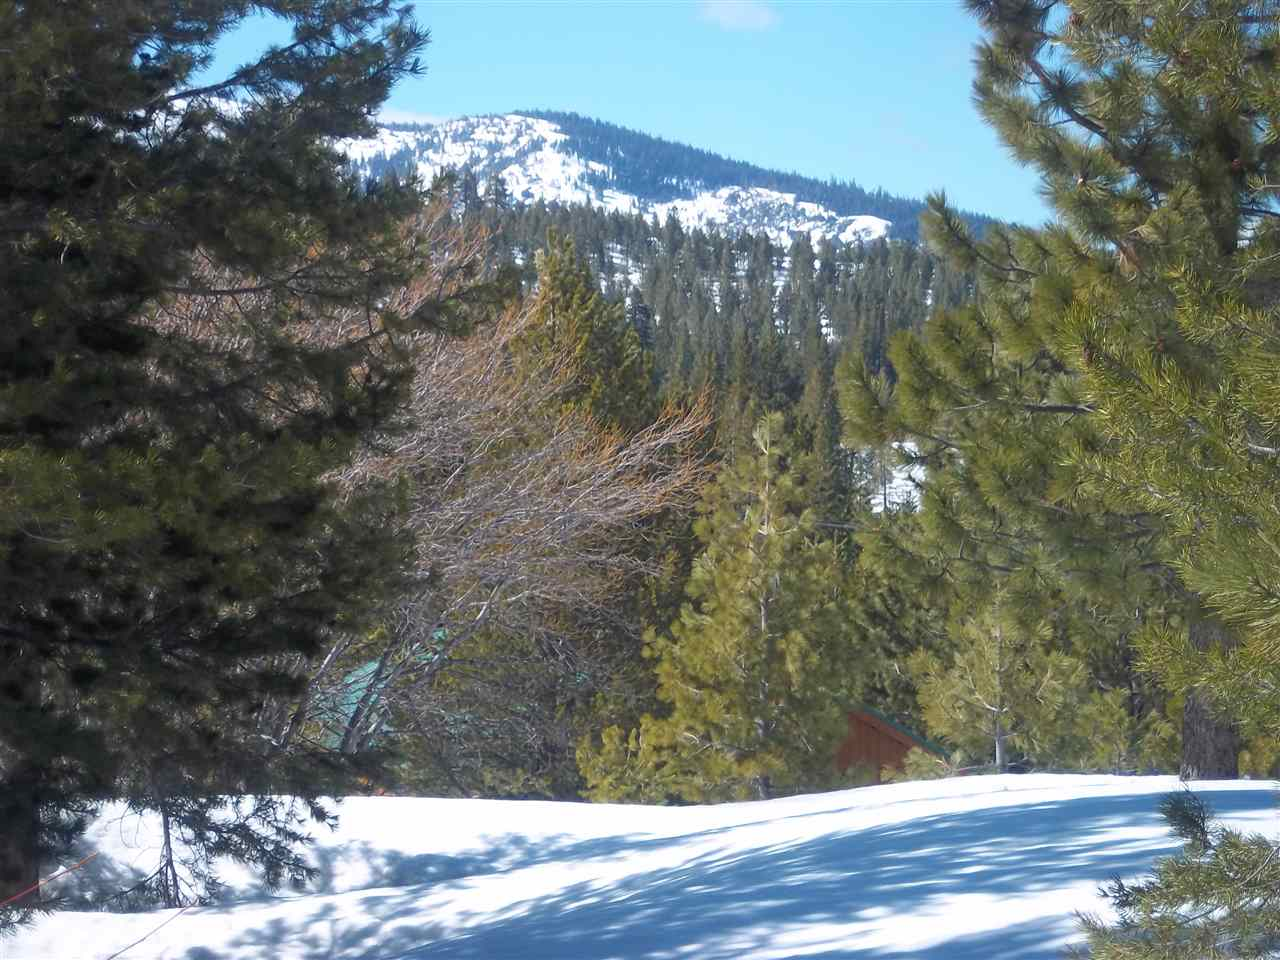 Residential Lot for Active at 12330 Snowpeak Way 12330 Snowpeak Way Truckee, California 96161 United States